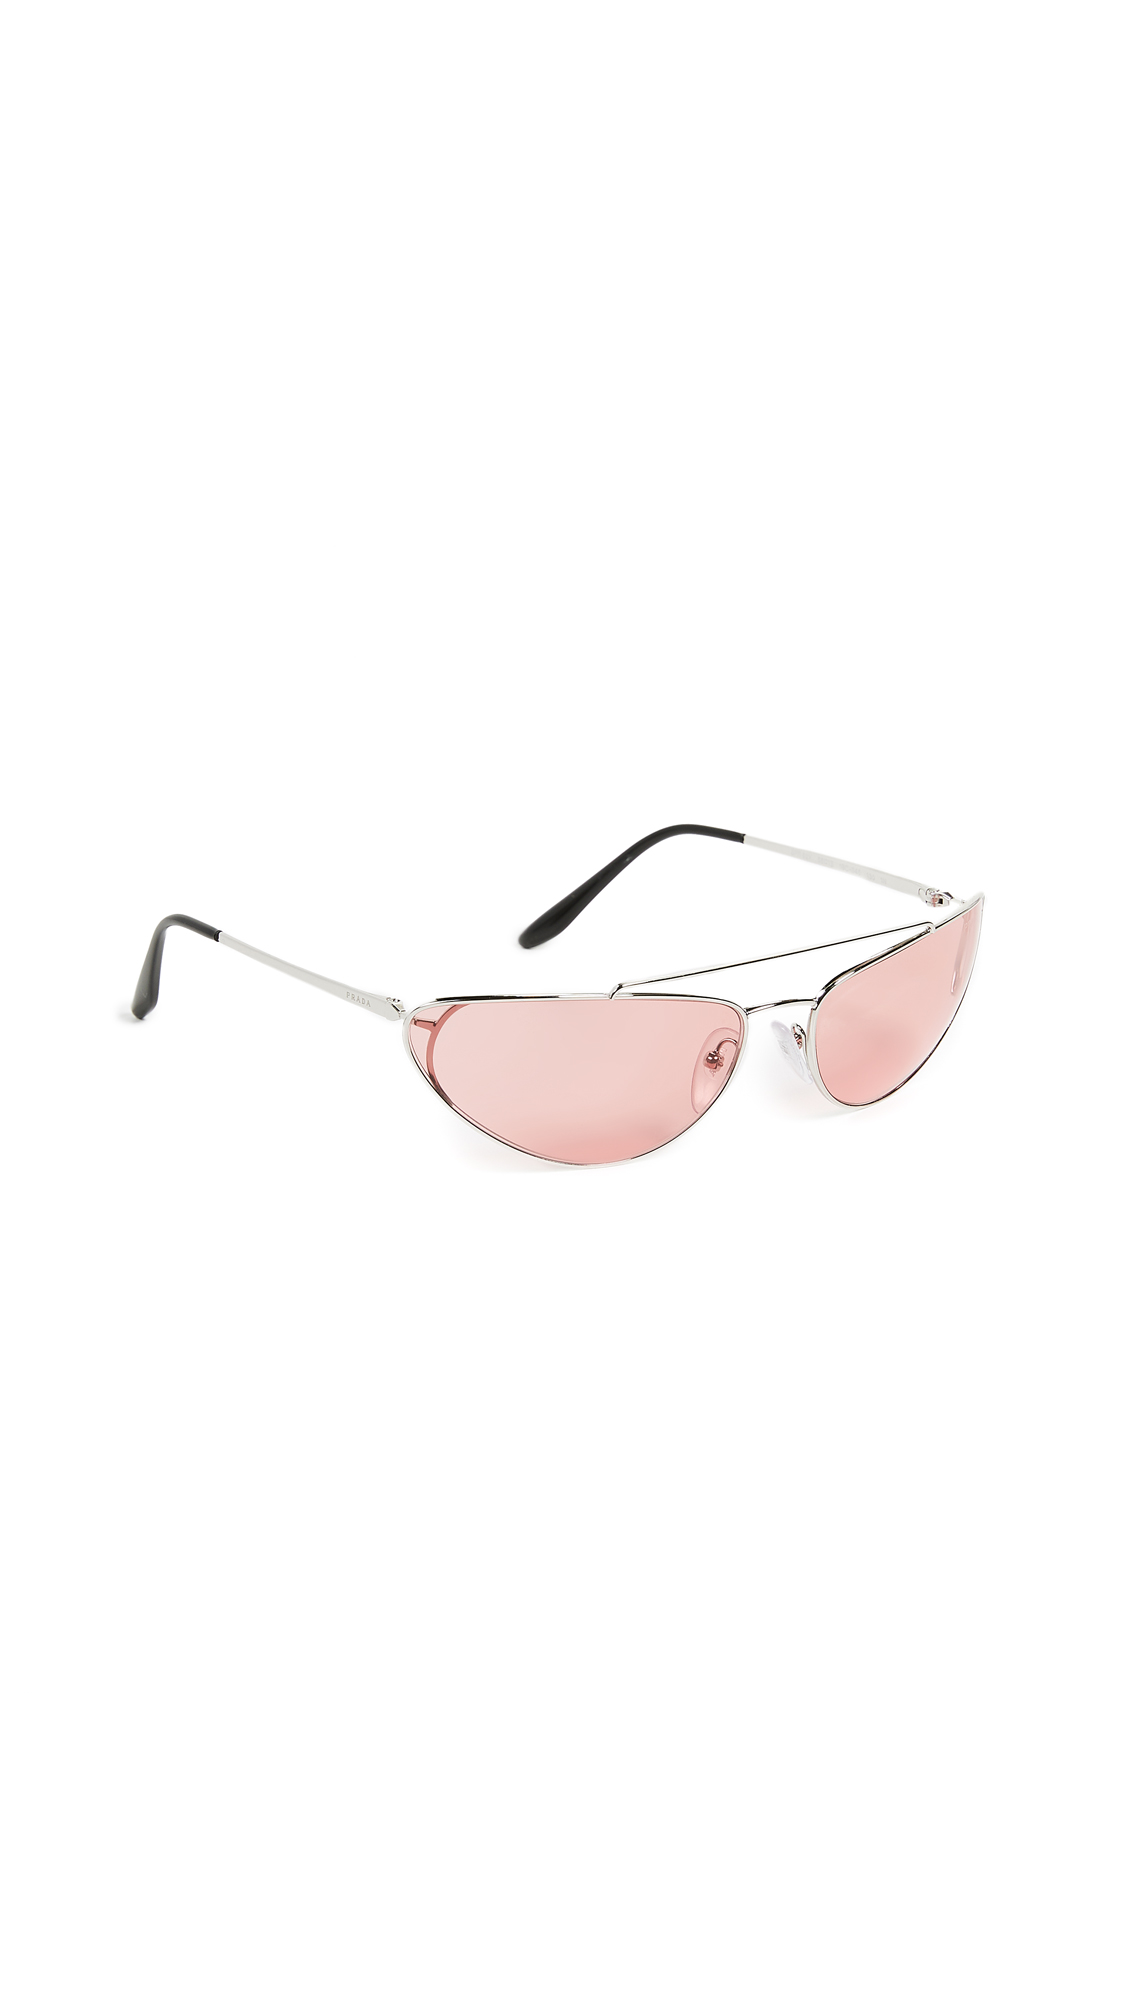 d445a9c926 Prada Pr 62Vs Cat Eye Sunglasses In Pink